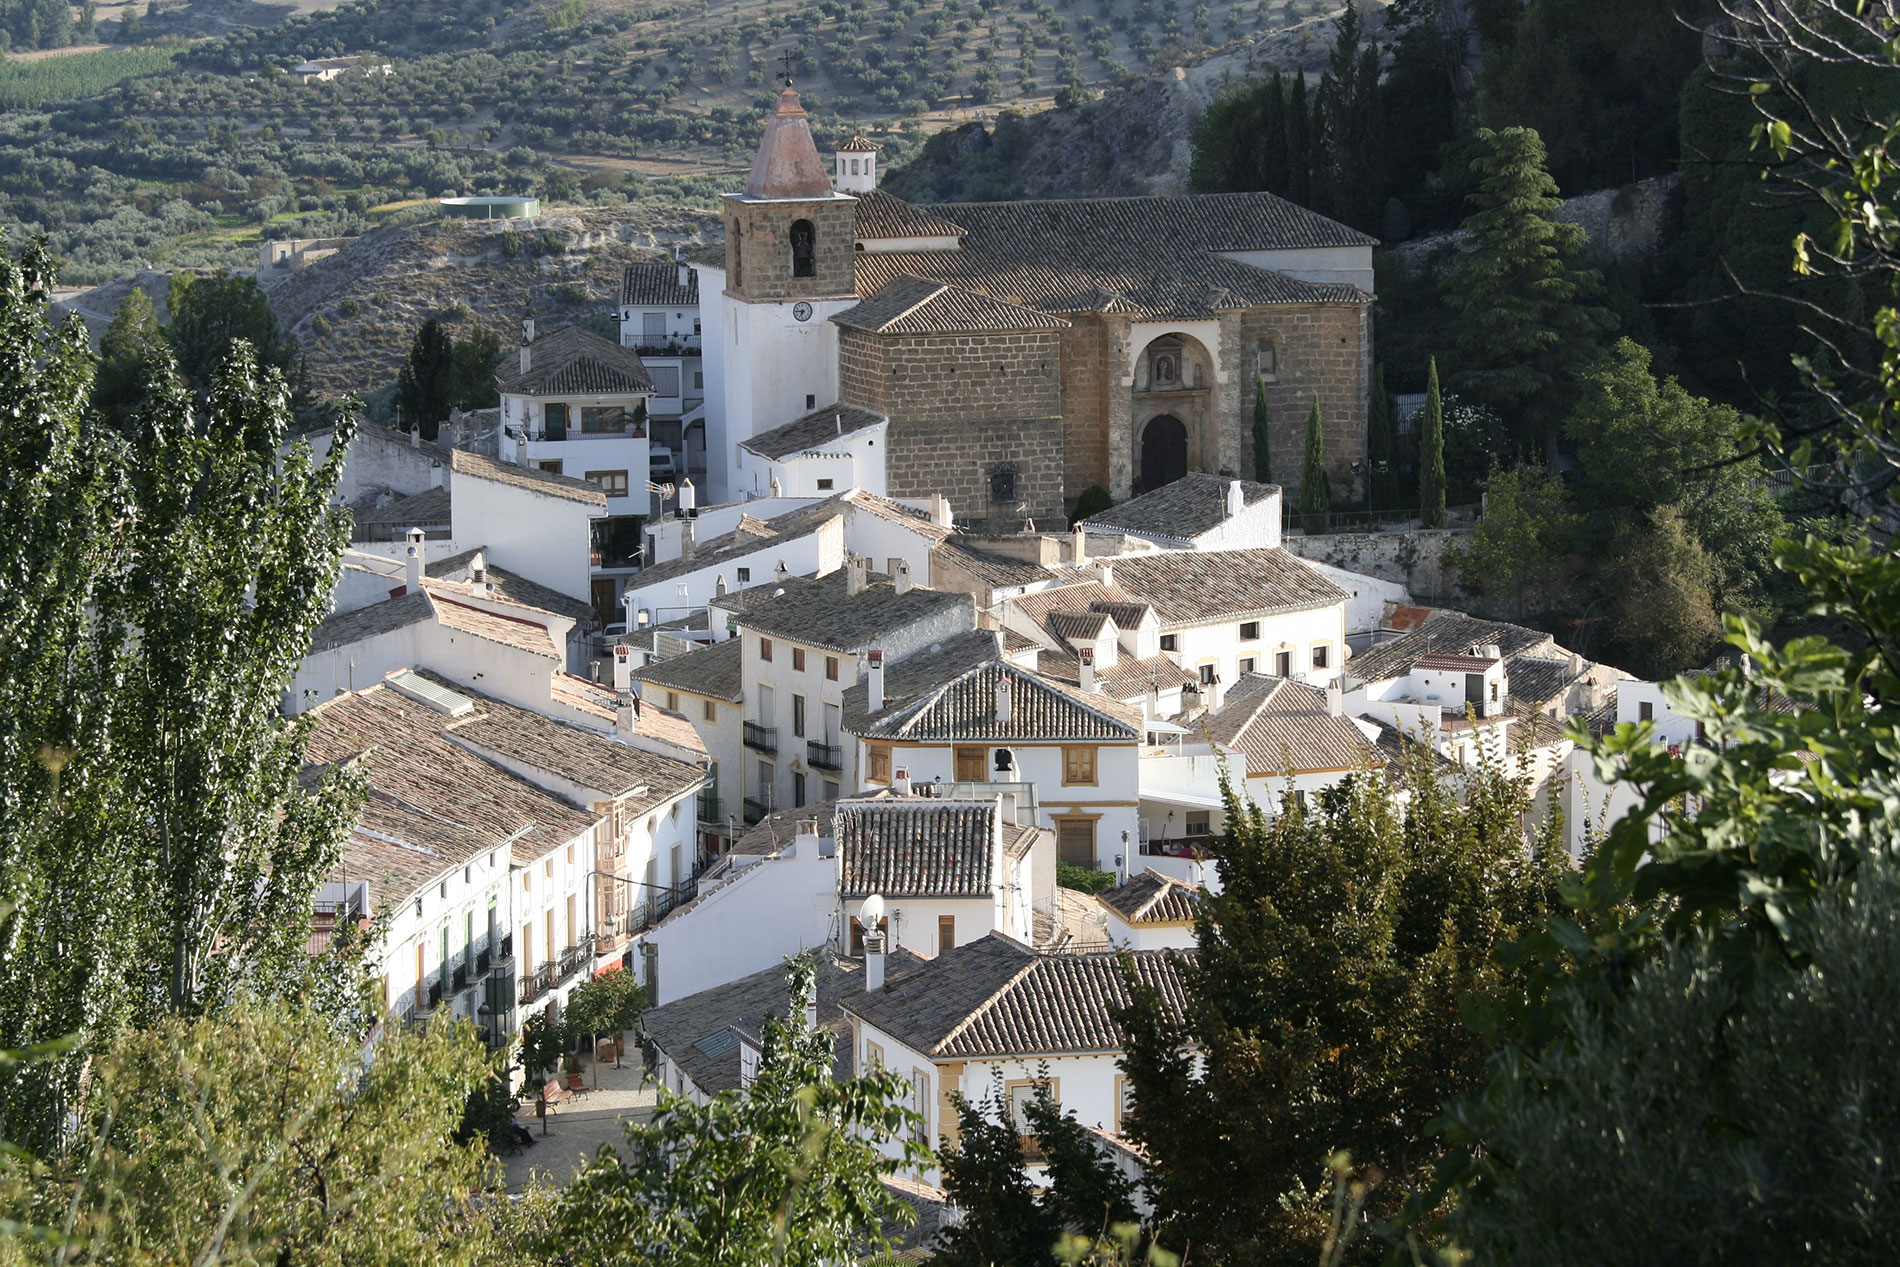 castril church,castril centre,Castril lake, Castril Natural park,family activity holiday andalusia spain, Responsible travel